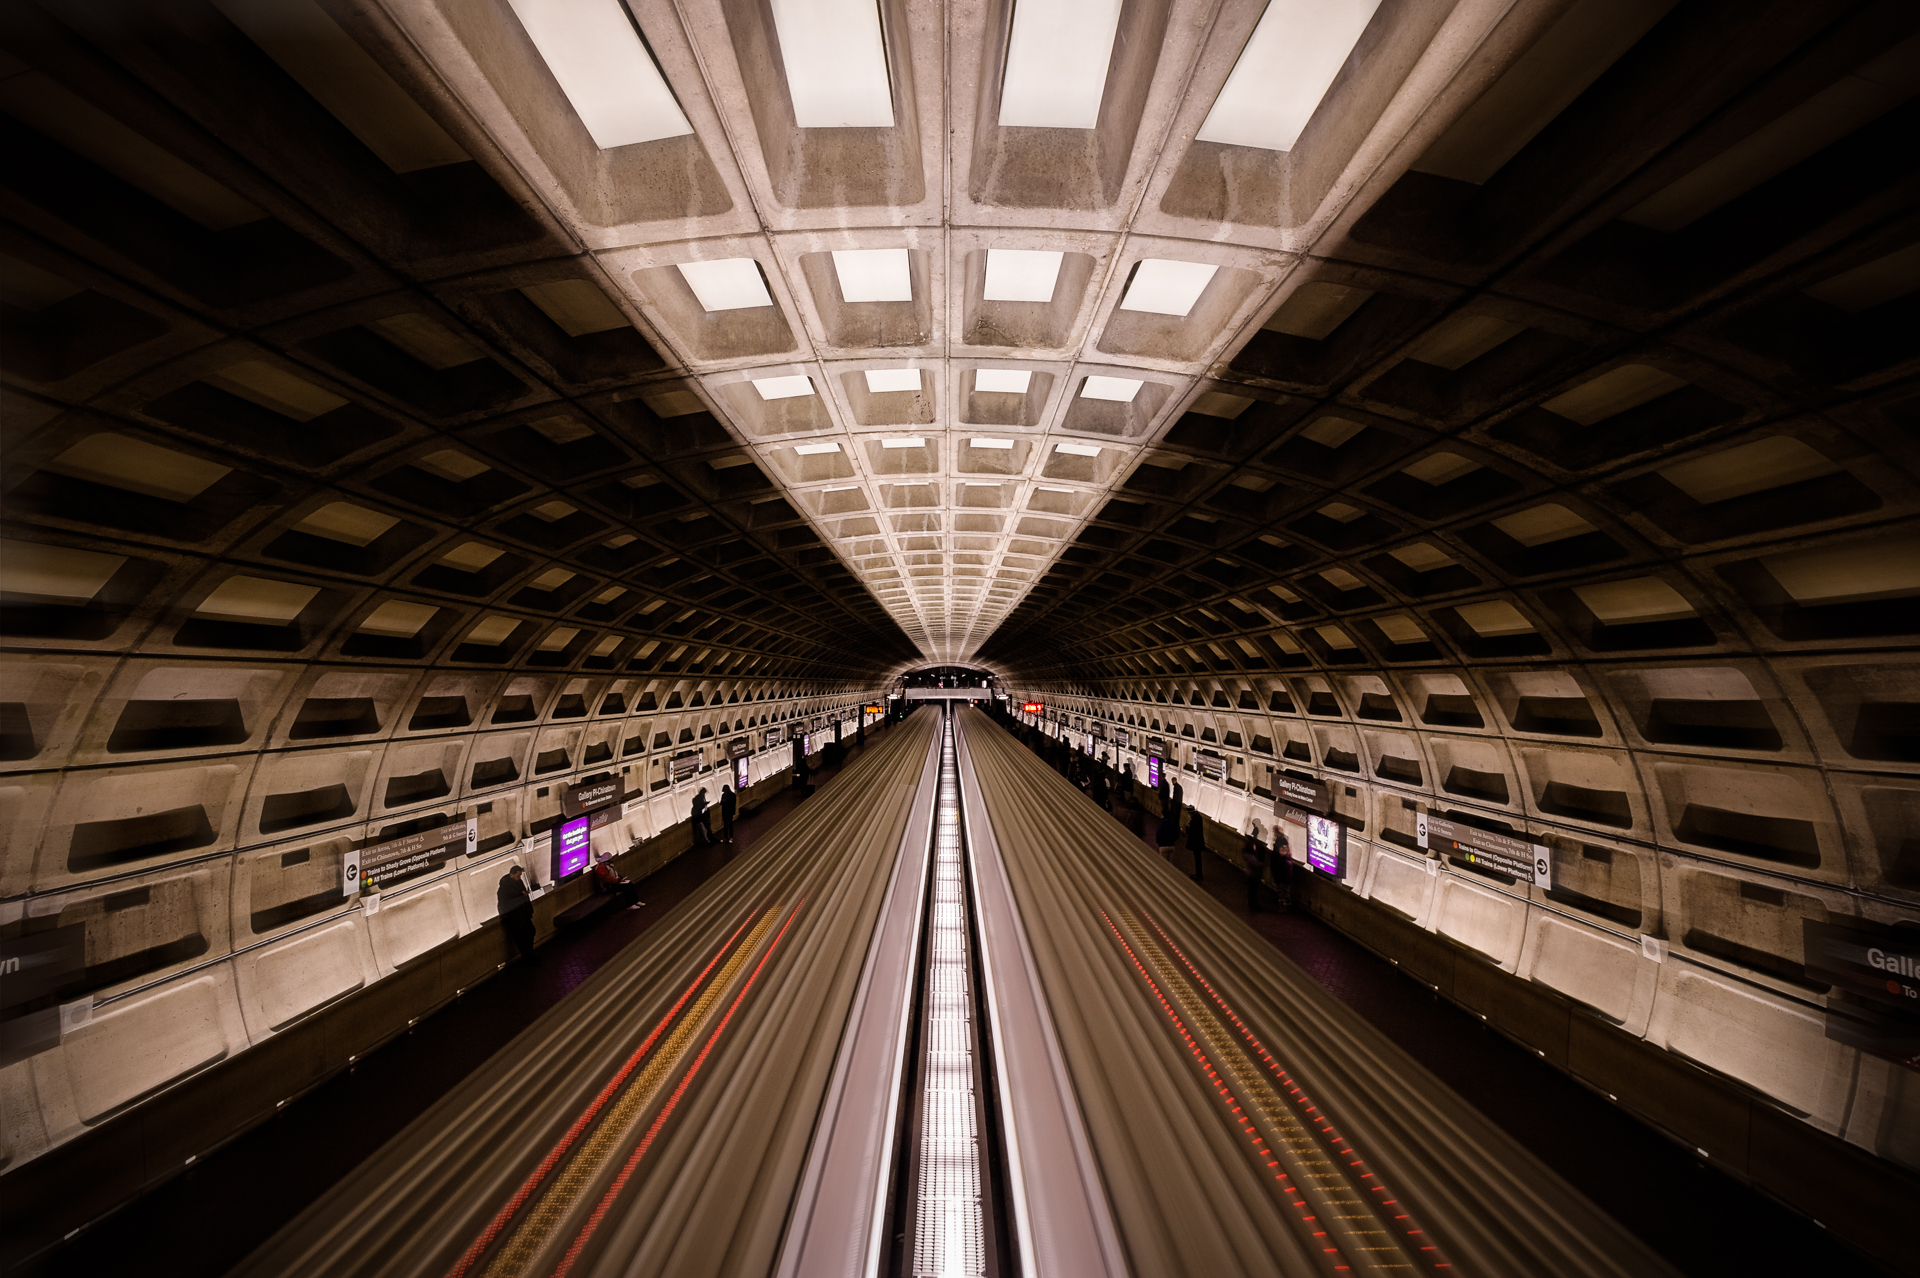 Red Line – Long exposure of the metro showcases its symmetry {&amp;nbsp;}(Image: Zack Lewkowicz)<p></p>